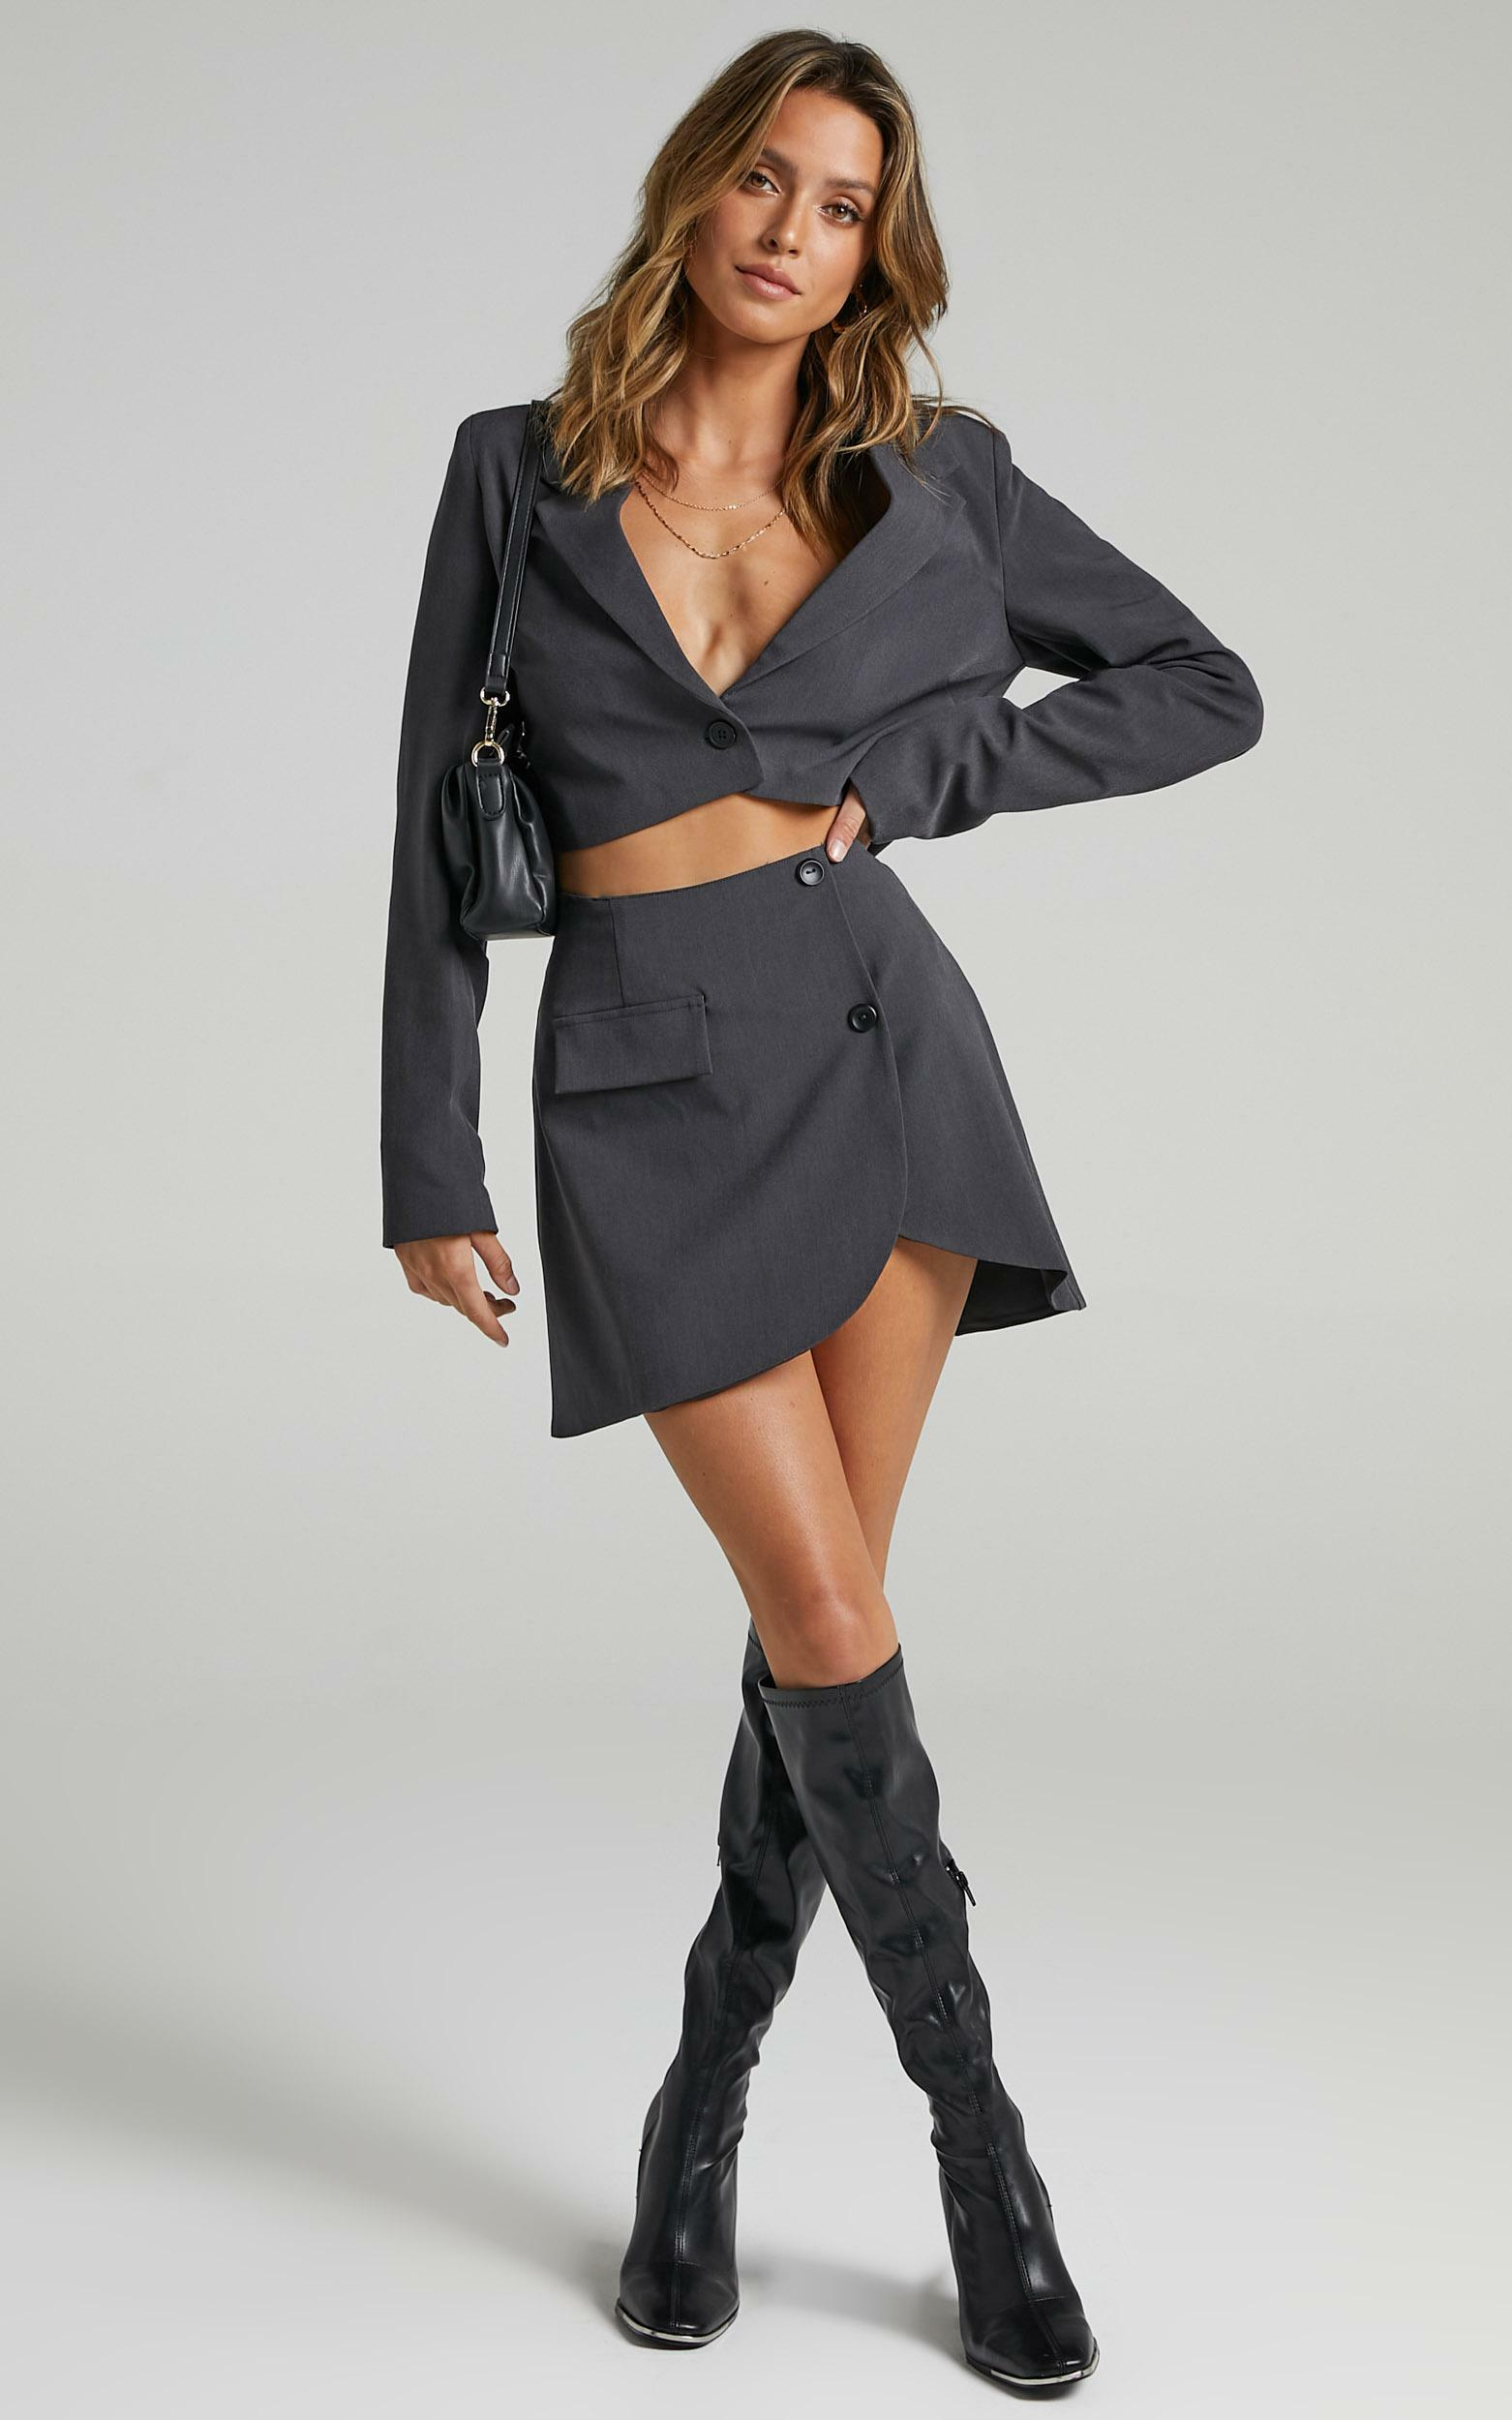 Angey Skirt in Charcoal - 06, GRY1, hi-res image number null